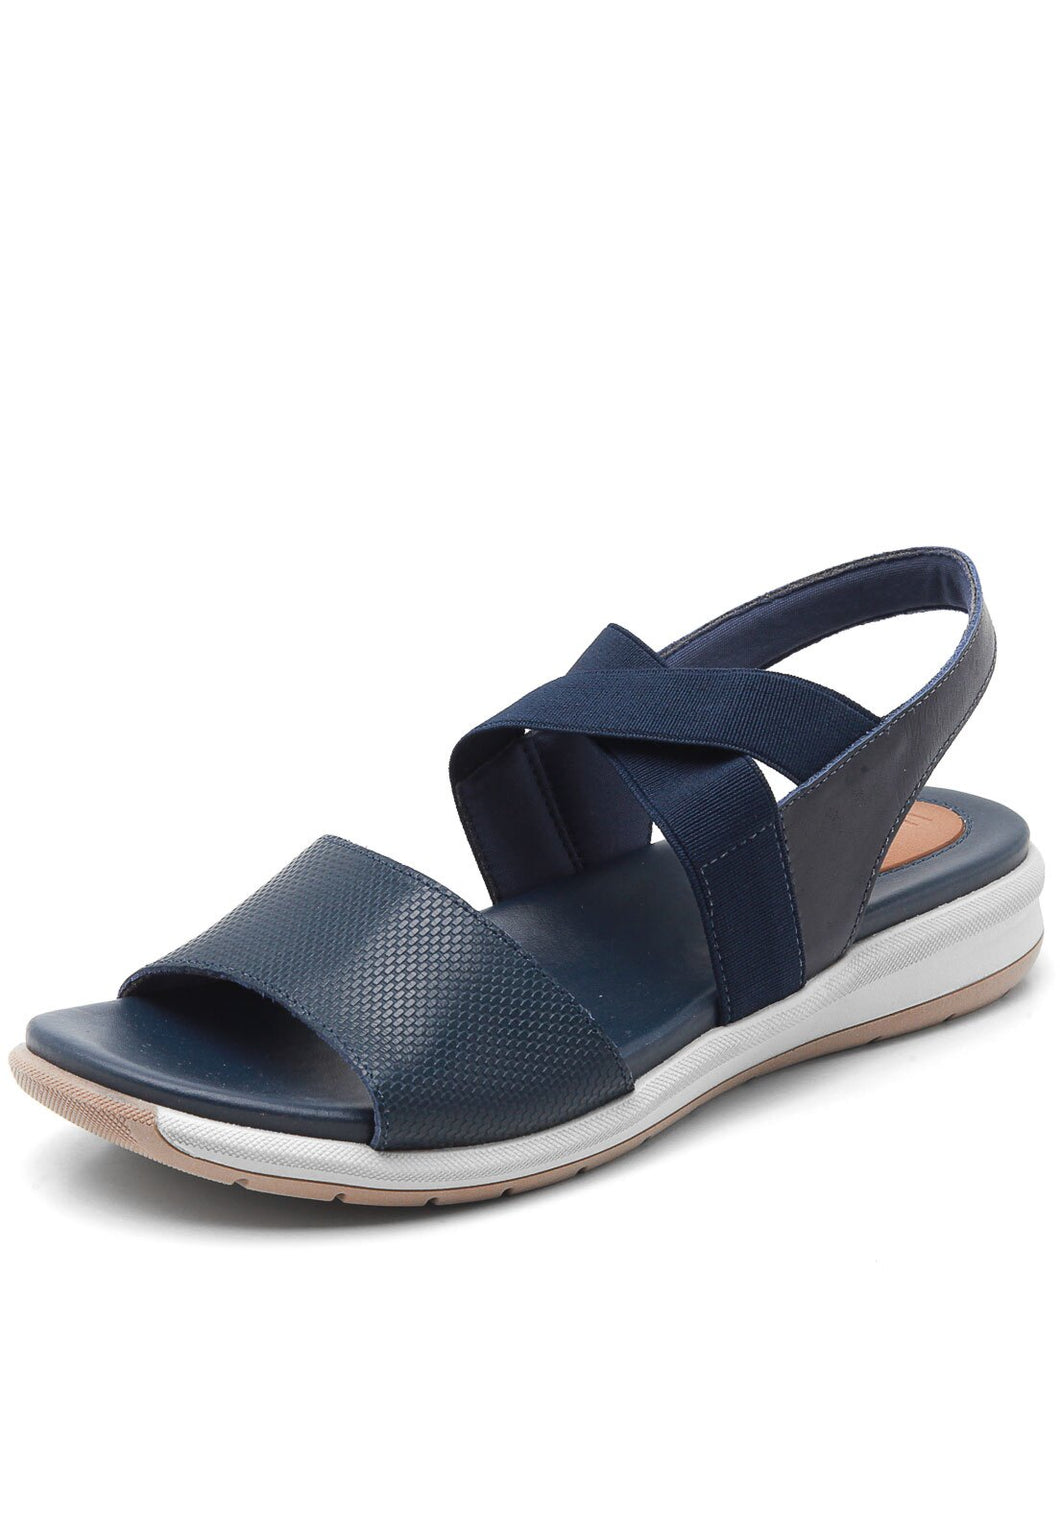 Leather and Cross Strap Sandal in Navy Blue - AB8905